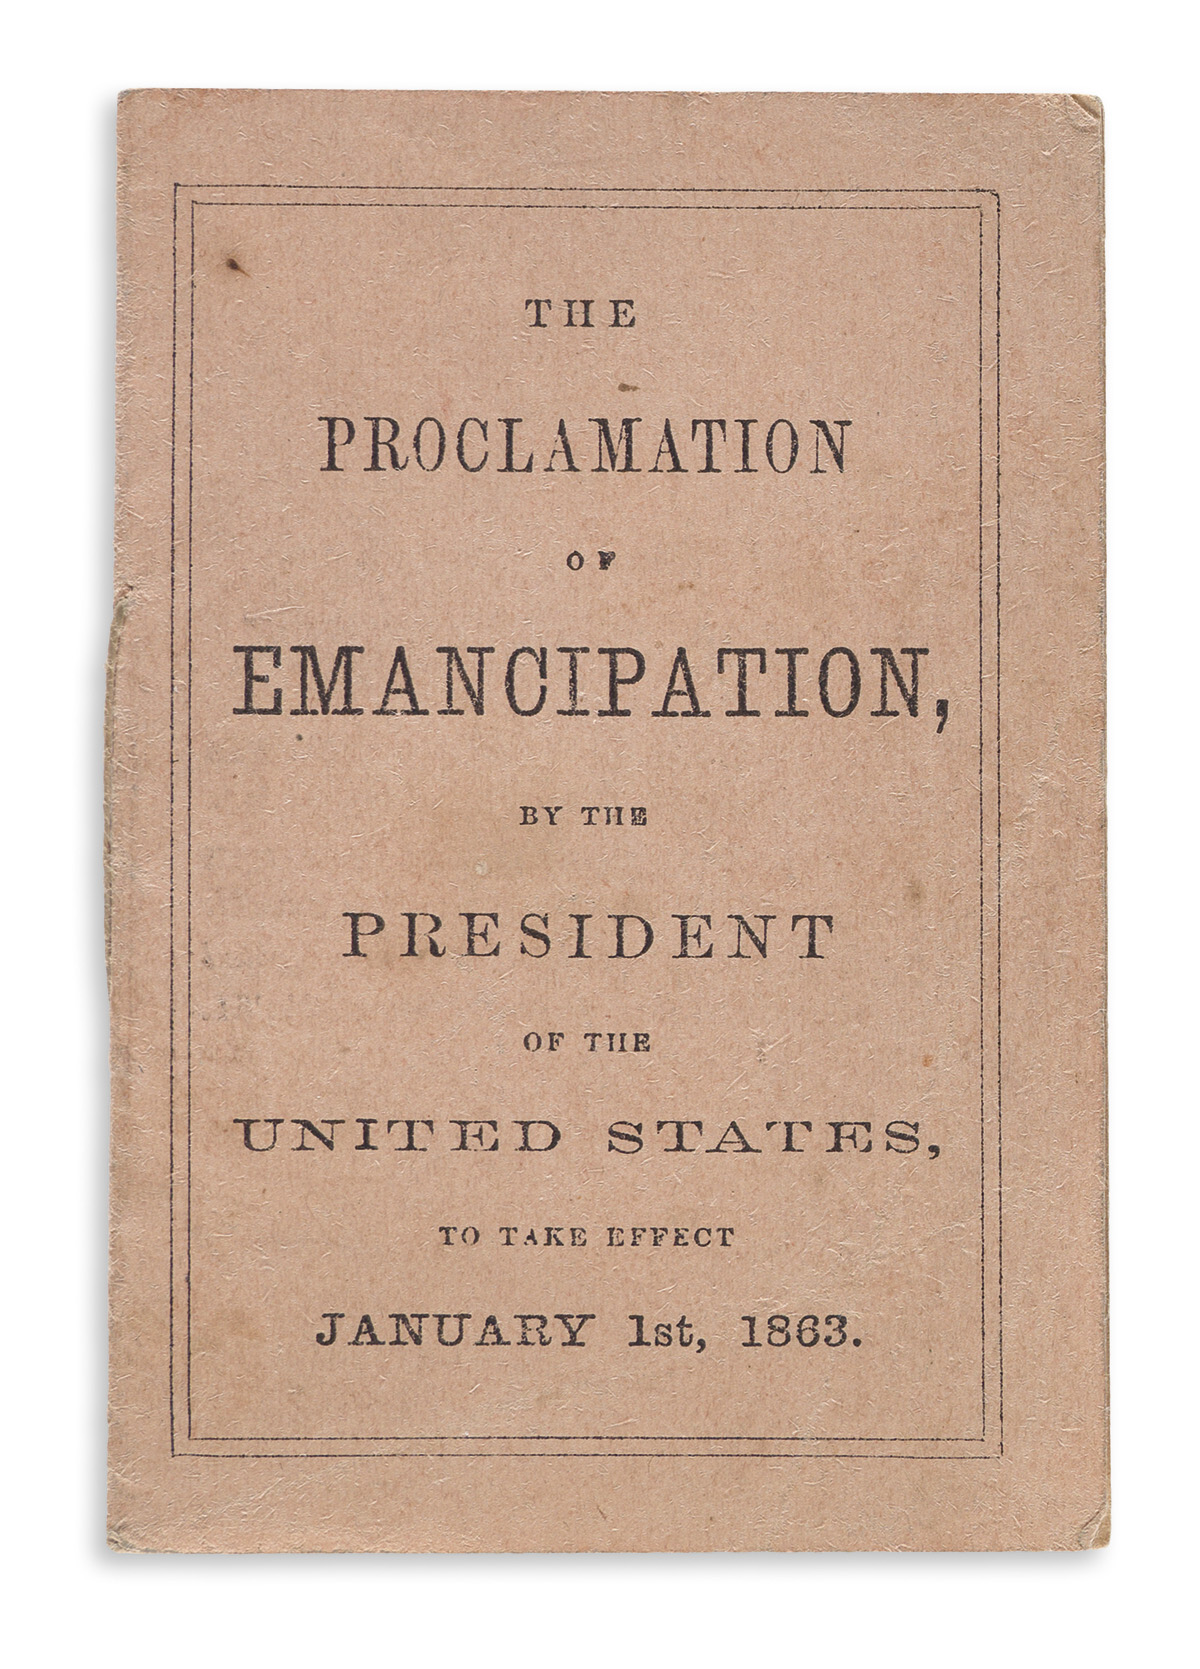 (SLAVERY AND ABOLITION.) Lincoln, Abraham. The Proclamation of Emancipation by the President of the United States,